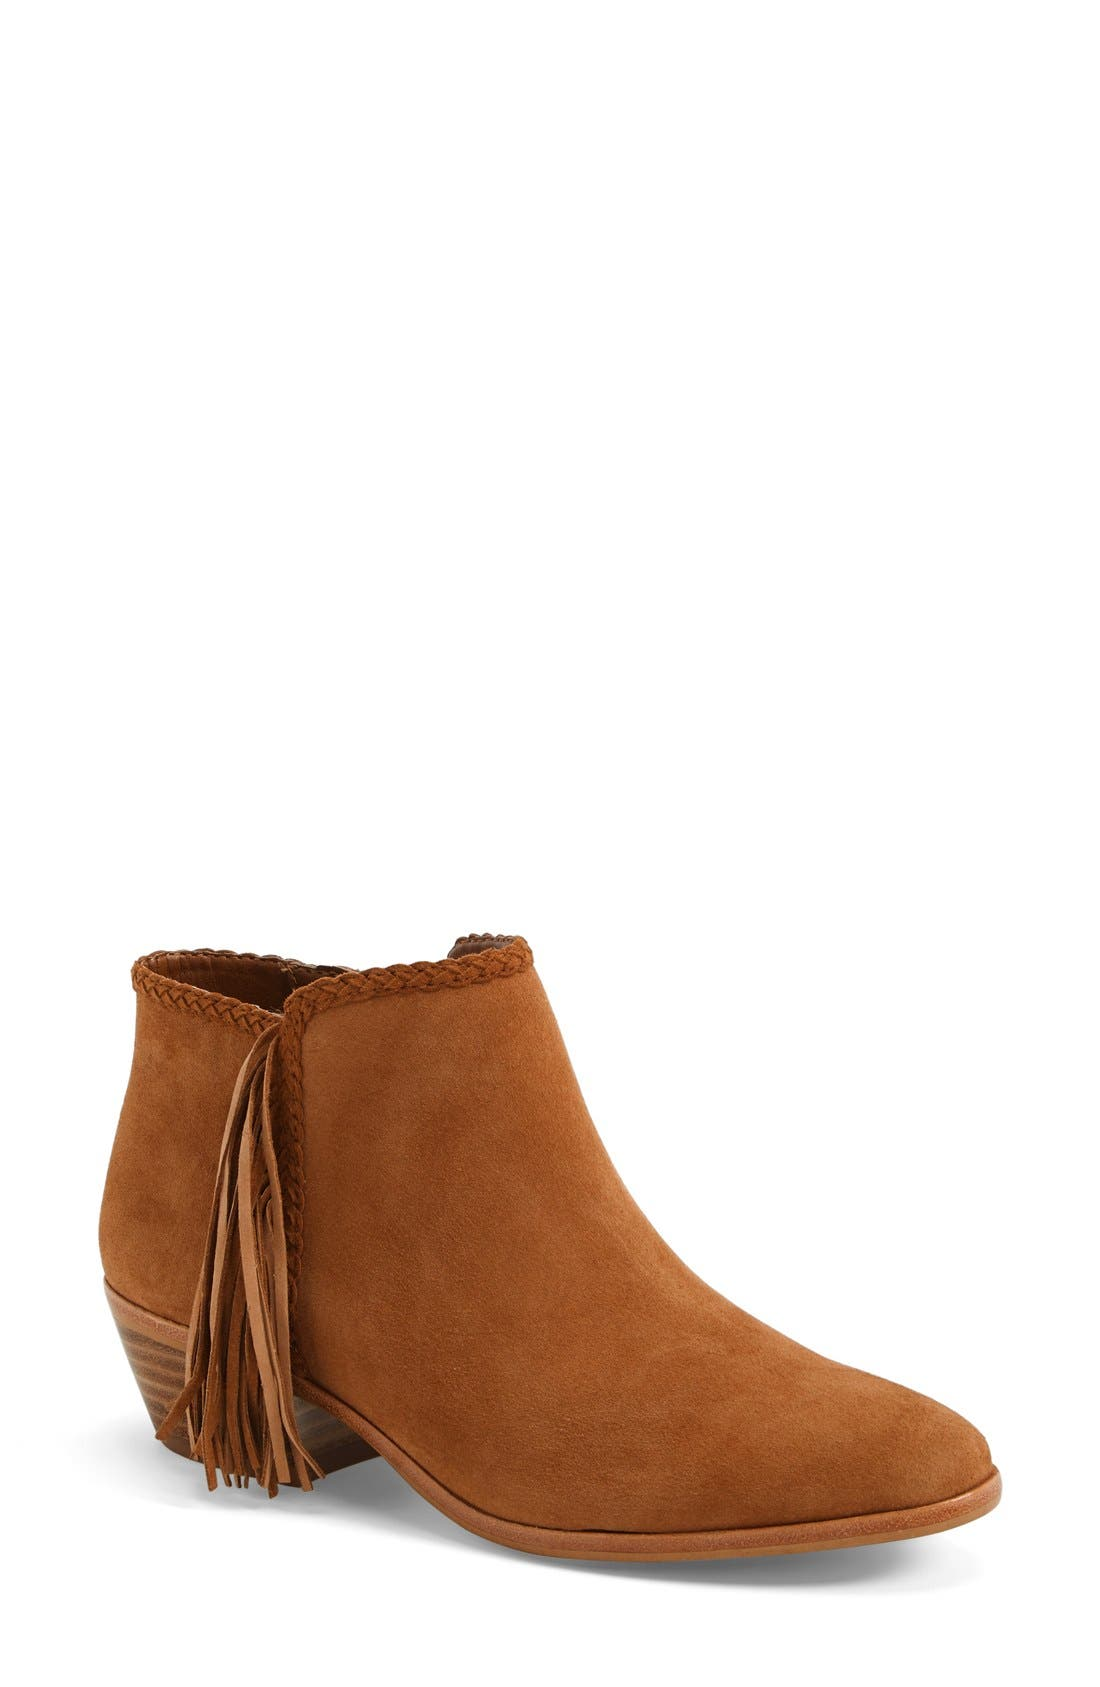 Alternate Image 1 Selected - Sam Edelman 'Paige' Fringed Ankle Bootie (Women)